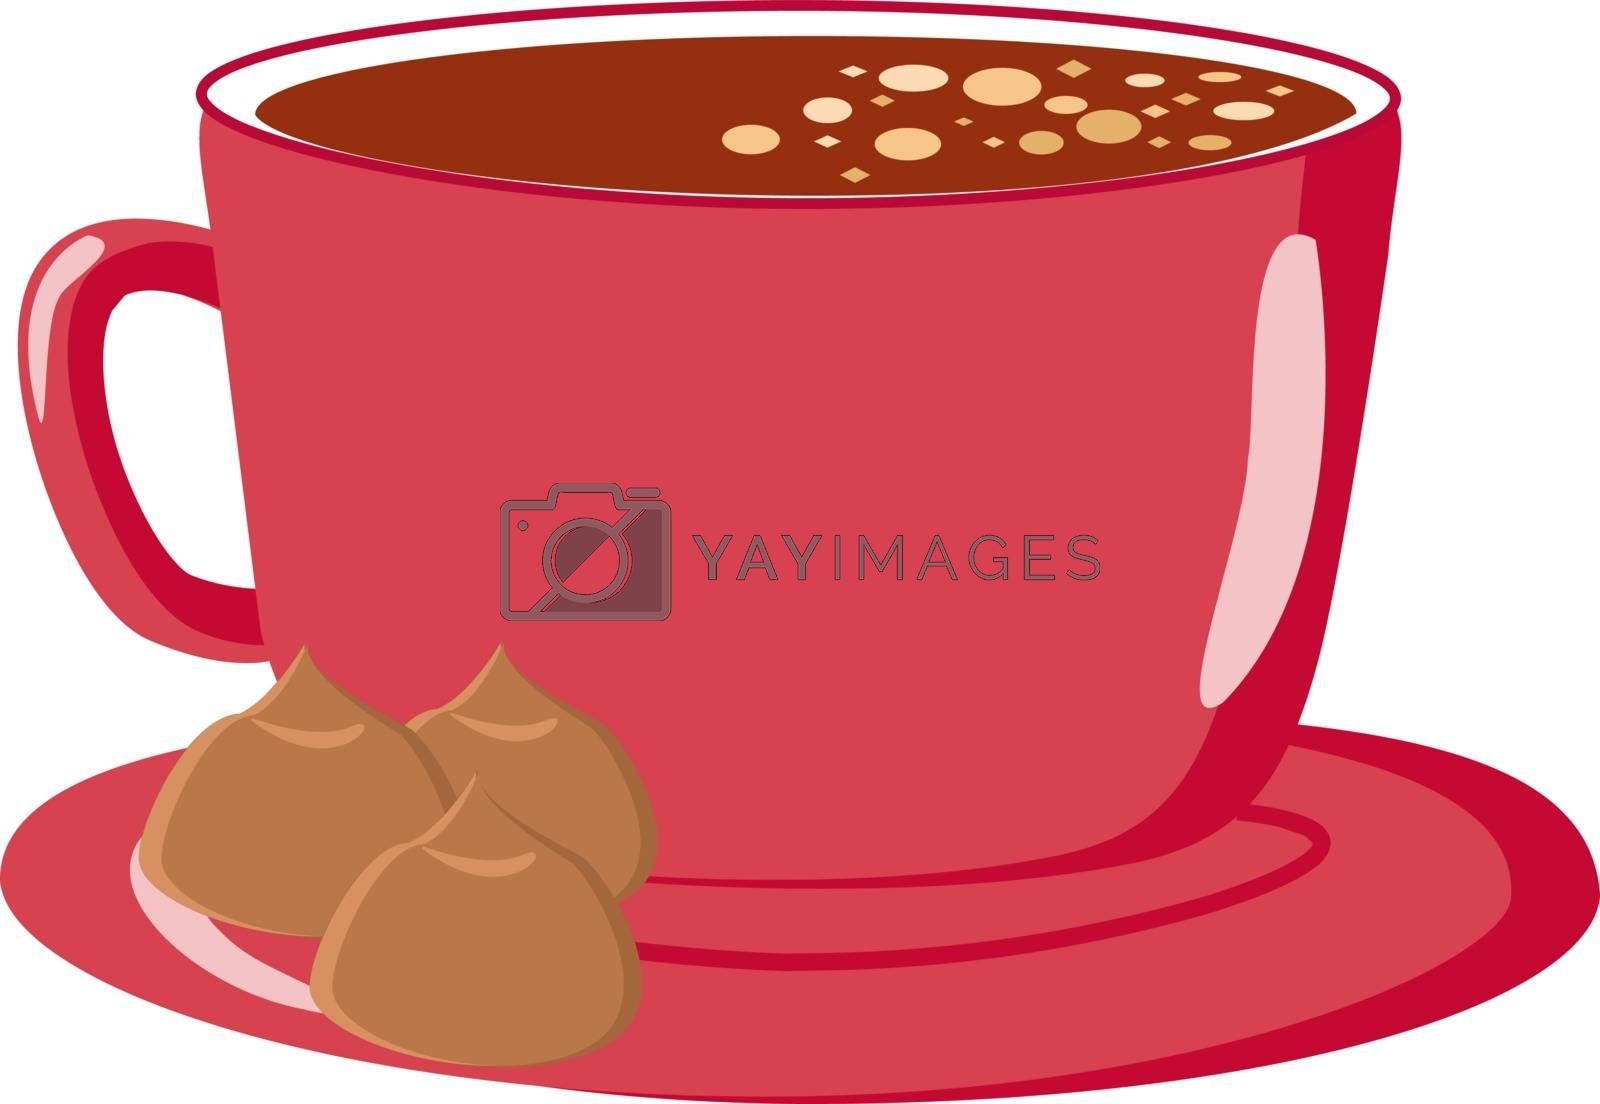 Pink cup, illustration, vector on white background.